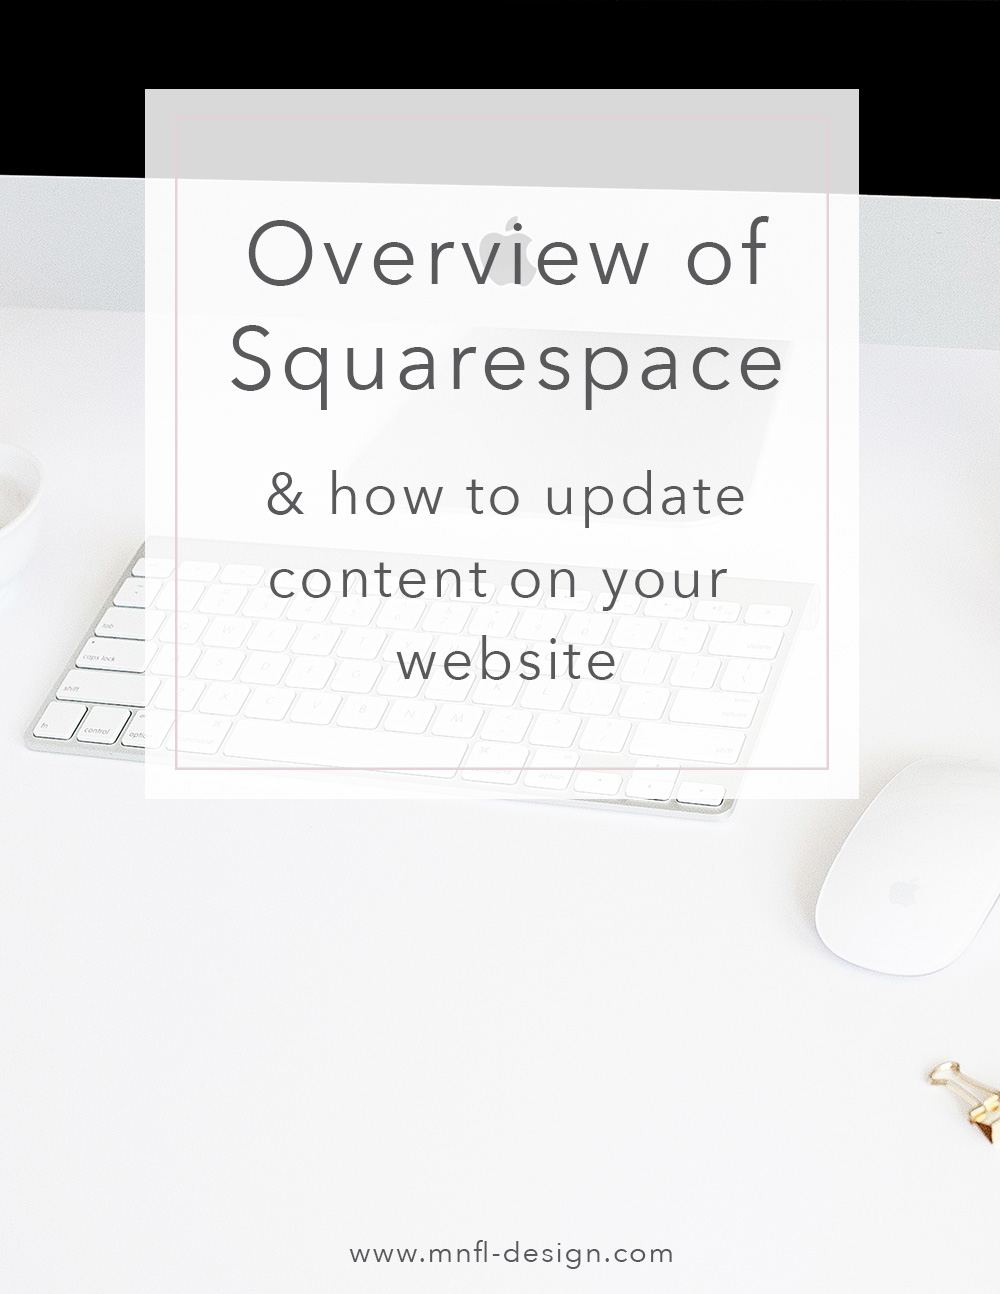 Overview of Squarespace and how to update content on your website | MNFL Design